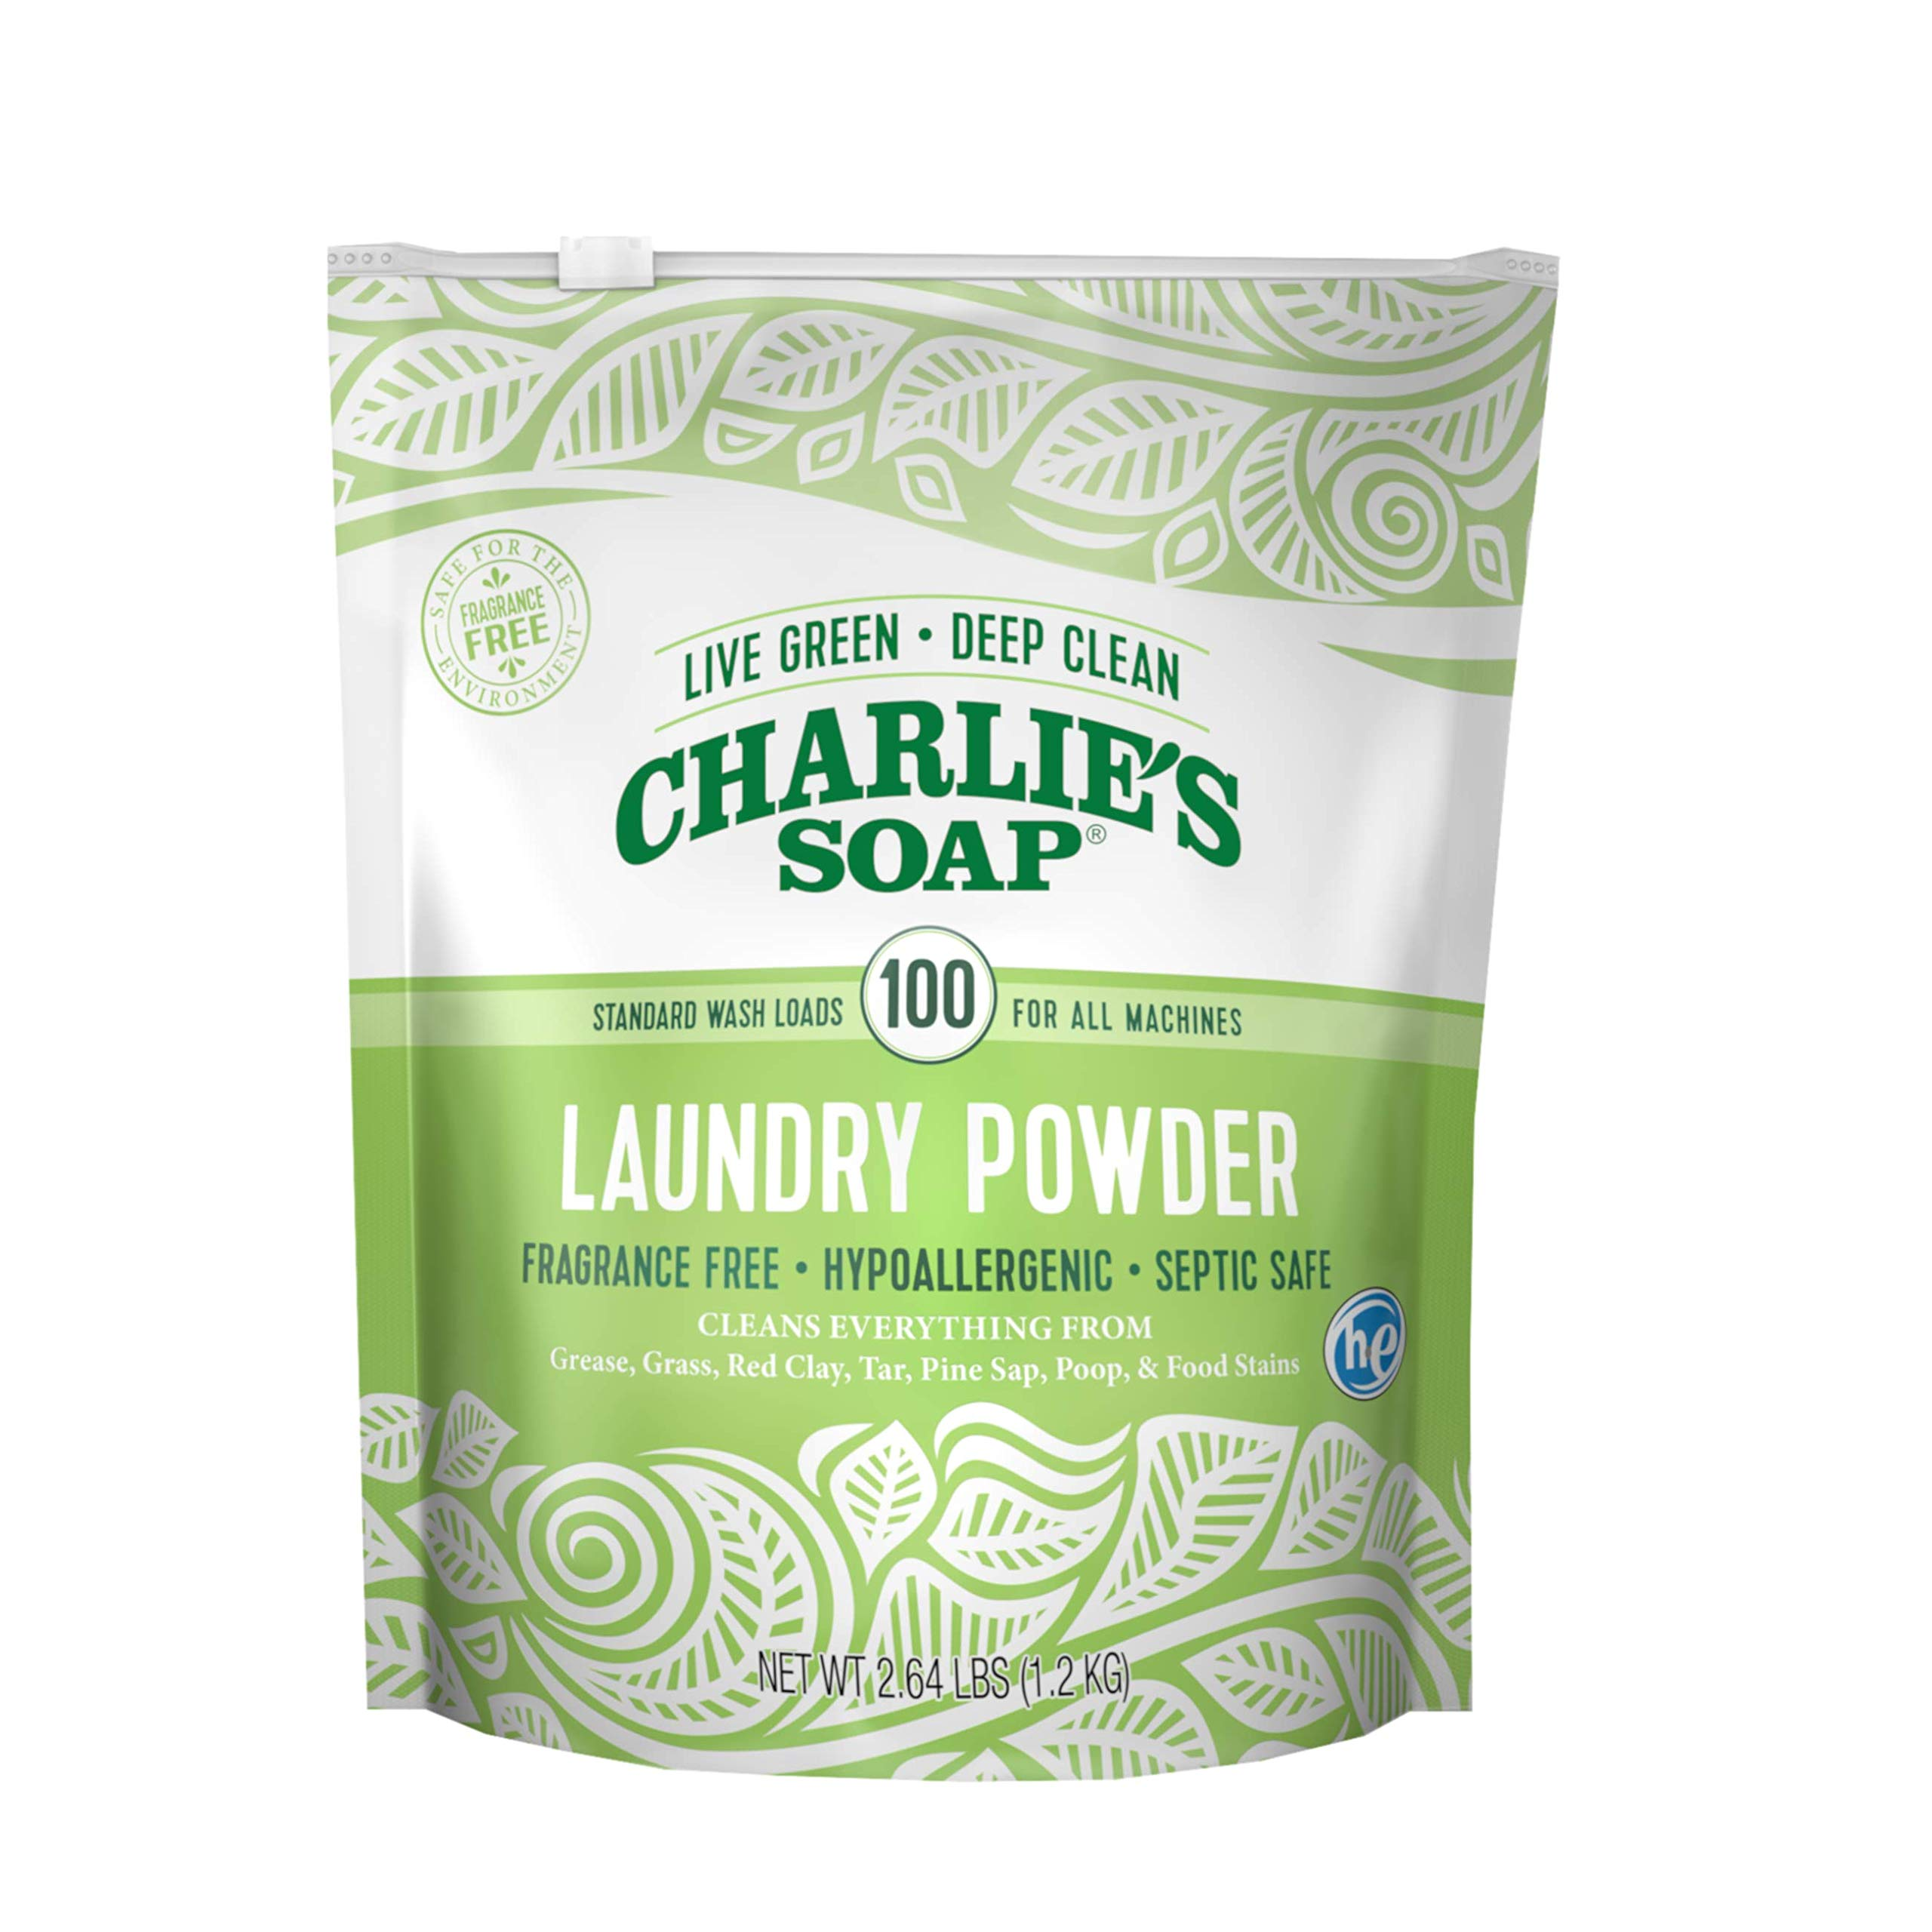 Charlie's Soap Laundry Powder (100 Loads, 1 Pack) Hypoallergenic Deep Cleaning Washing Powder Detergent - Eco-Friendly, Safe, and Effective by Charlie's Soap